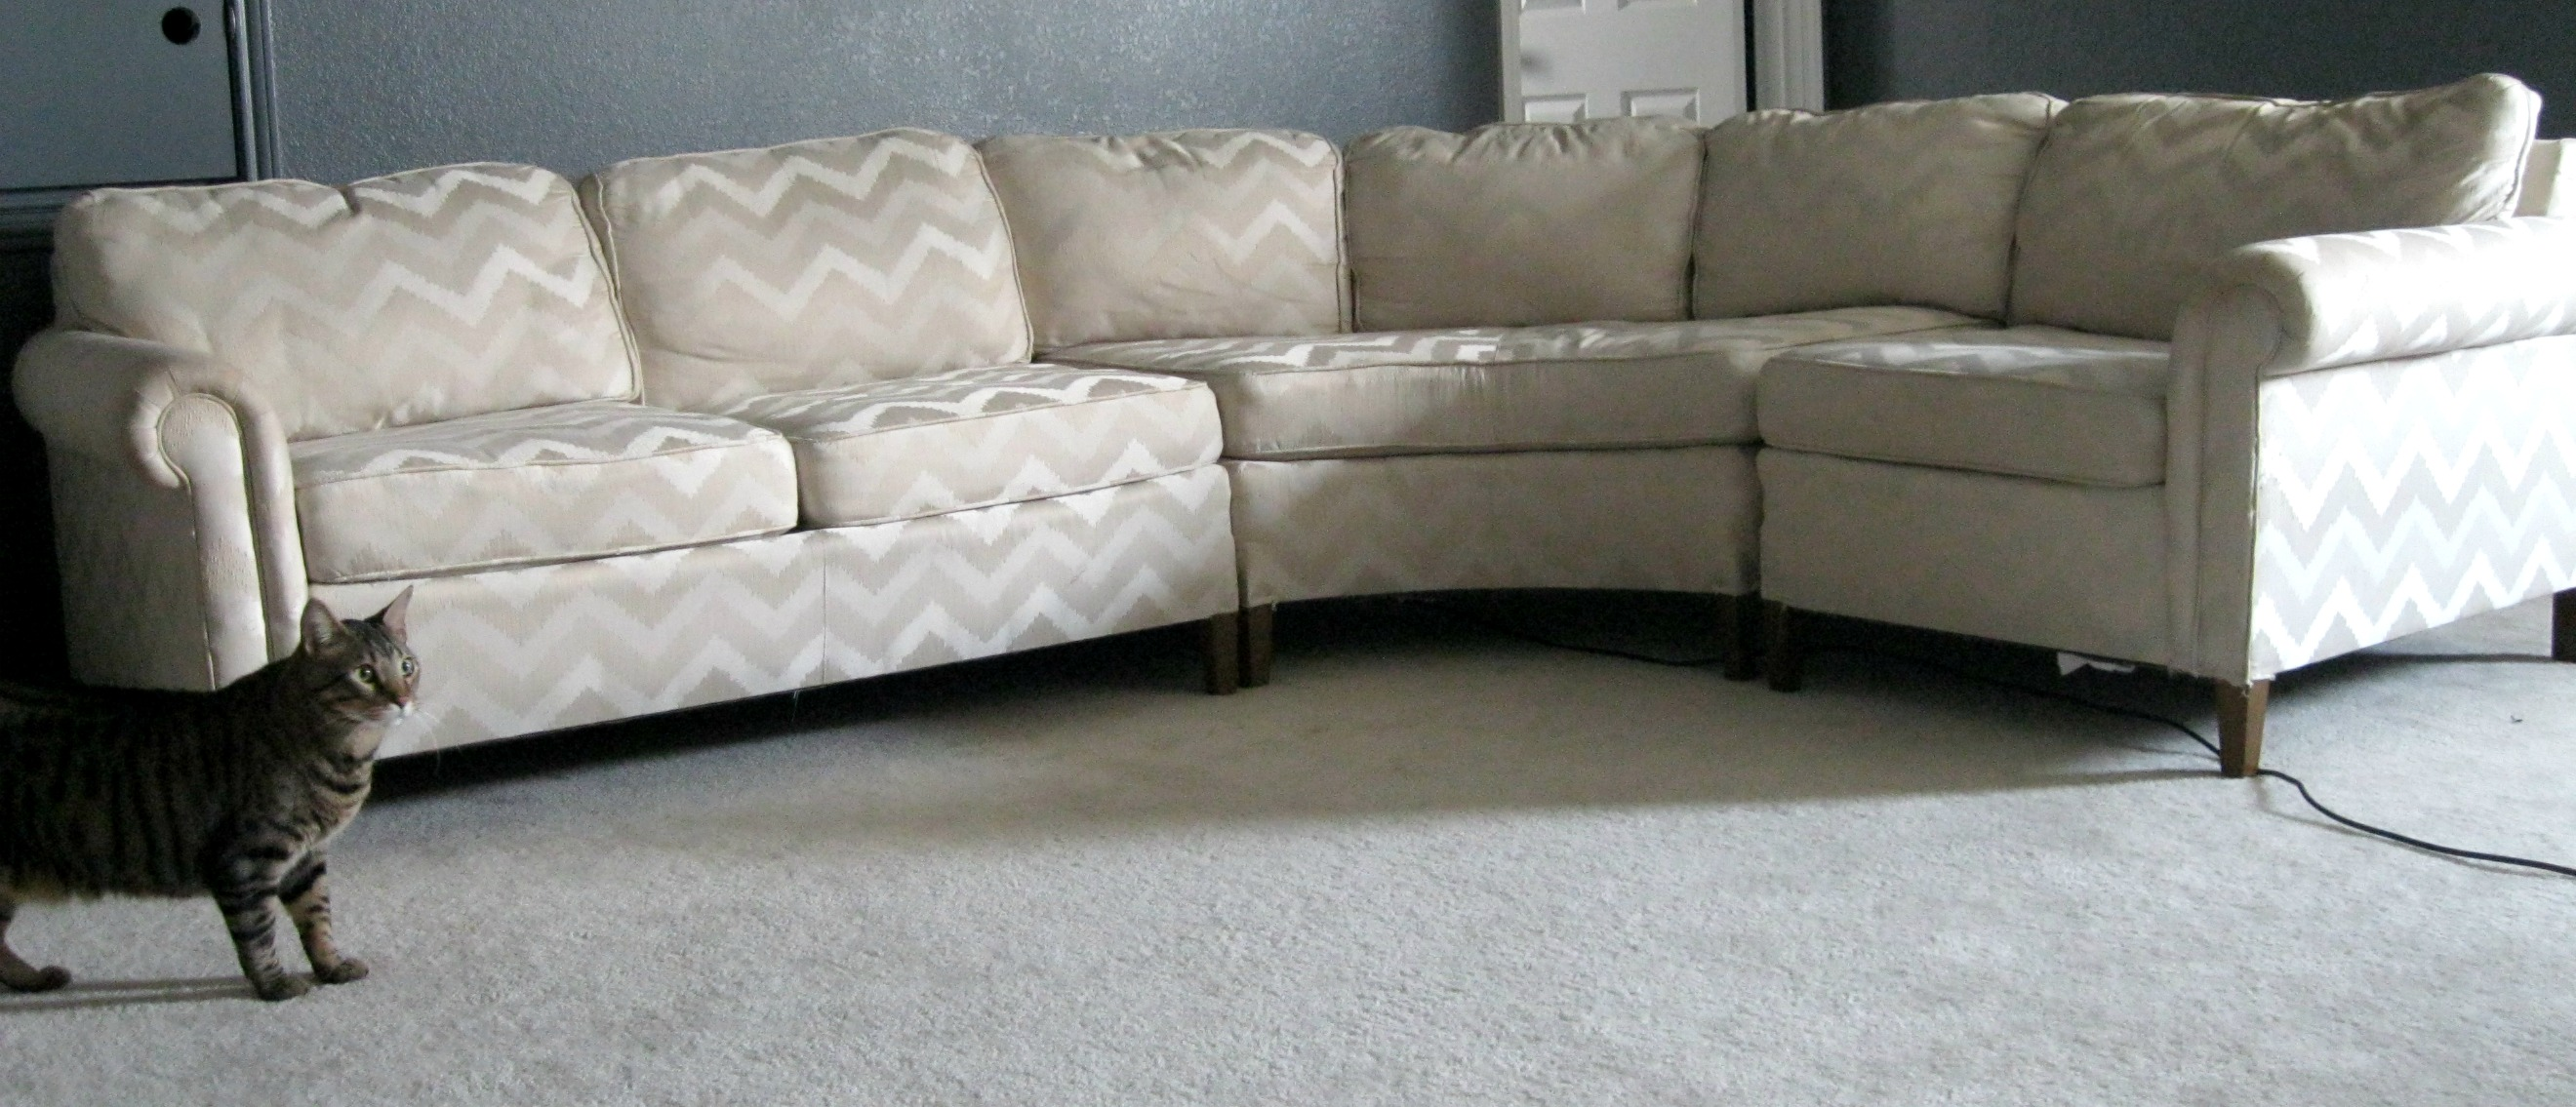 Sectional Sofa Dreams Answered by Craig